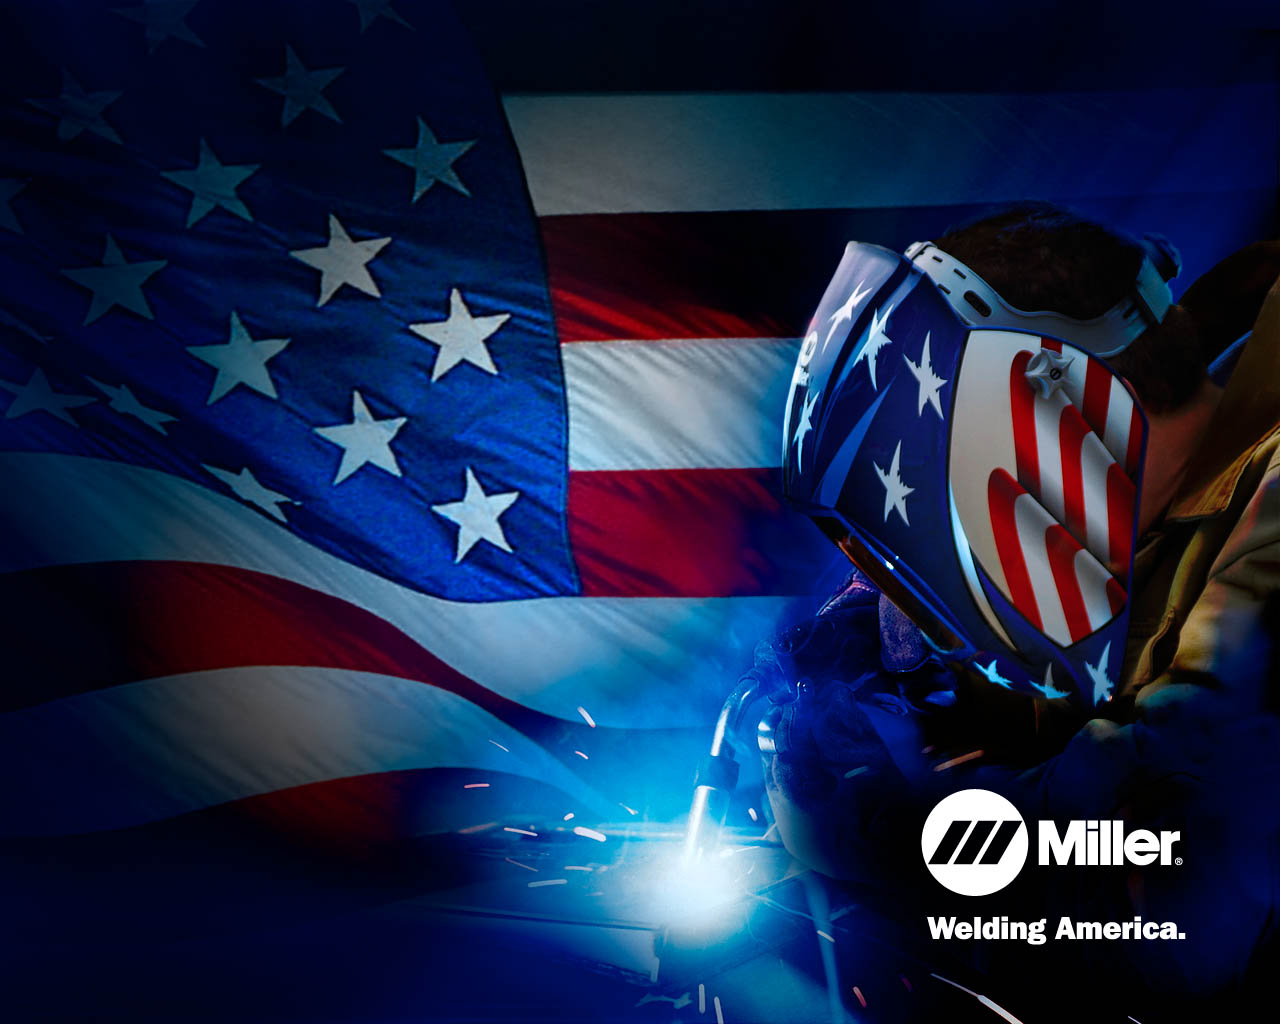 Miller Dynasty 200 Dx Acdc Tig Welding Machine additionally Usa Russia And Middle East To Get New Volkswagen Atlas Suv additionally 2019 Lincoln Navigator Redesign Interior Features And Price moreover 2019 Jeep Grand Cherokee Redesign Specs And Prices additionally 50690290. on lincoln electric logo